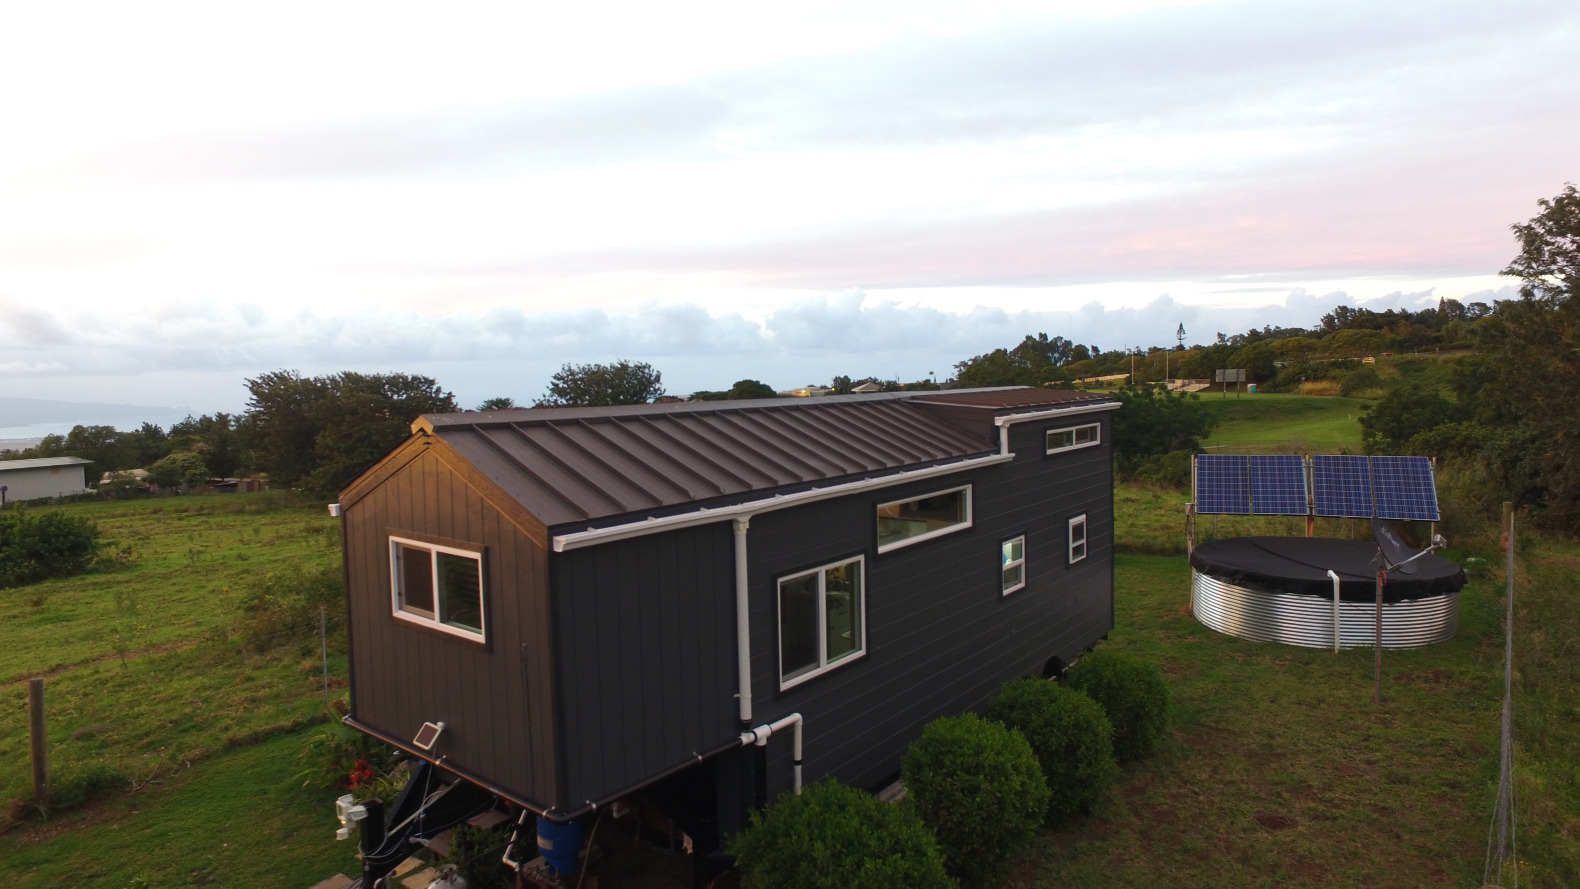 This tiny home allows a family of 3 to go off the grid in Maui